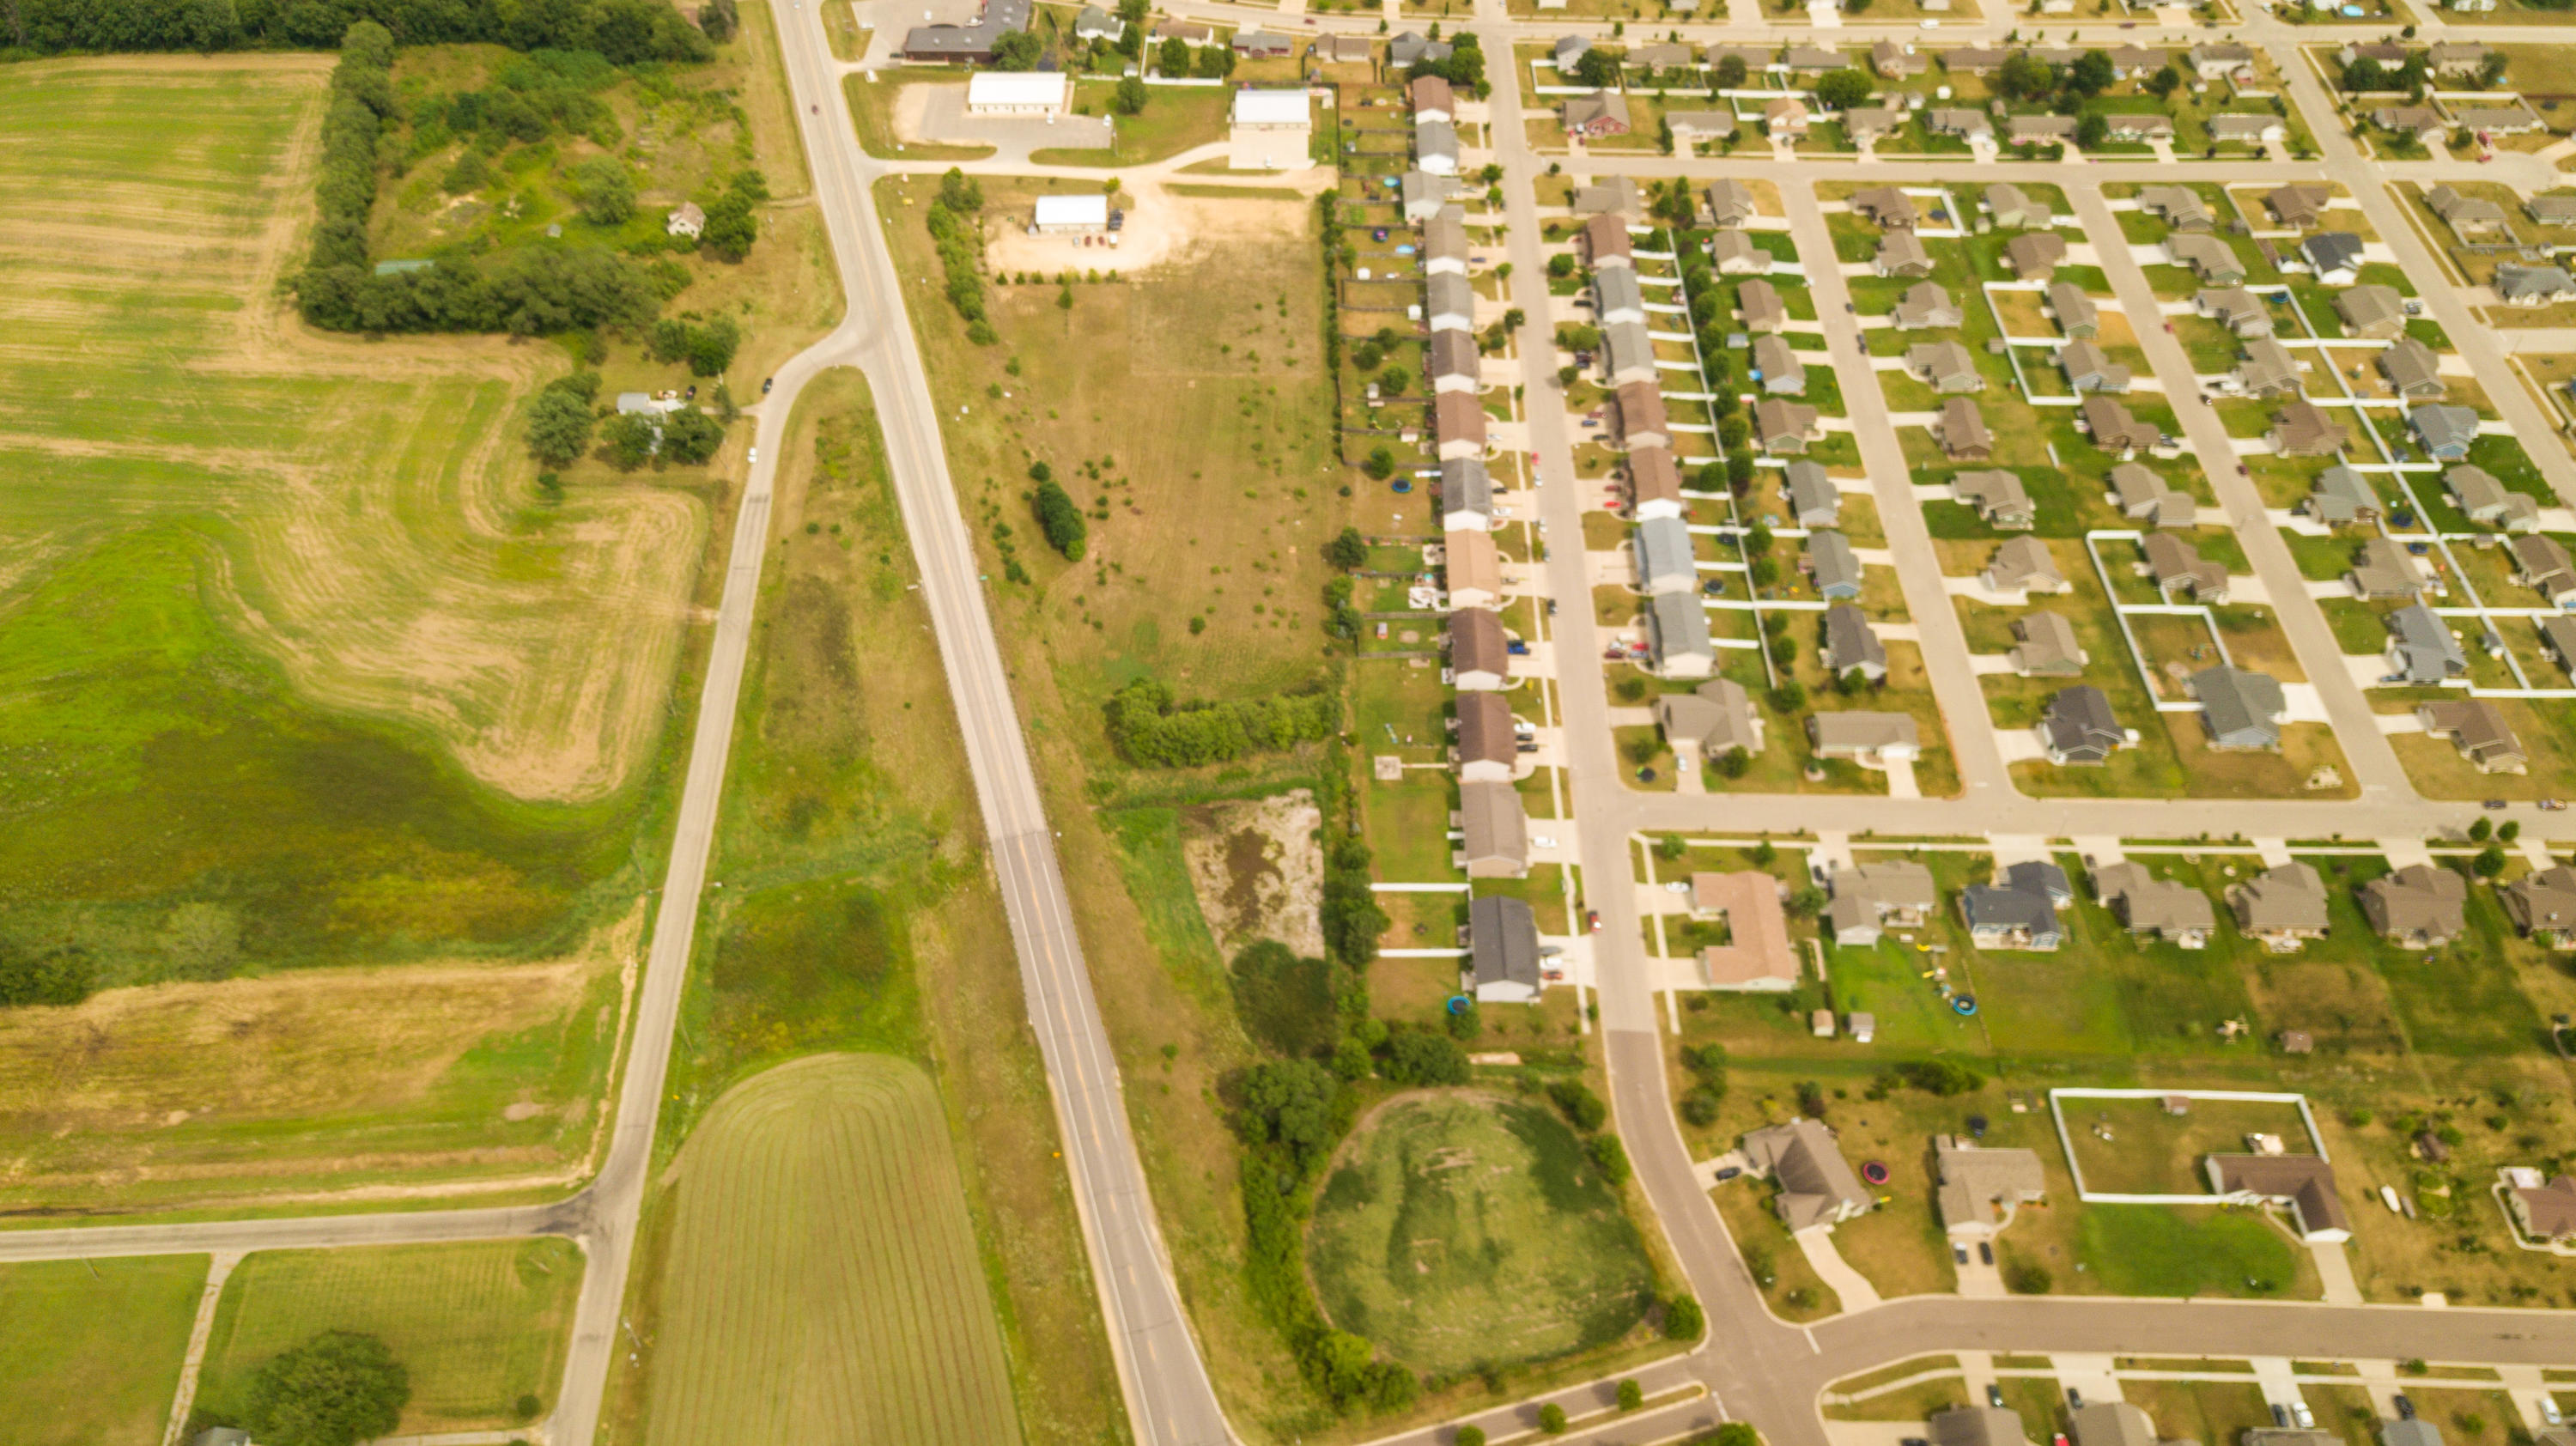 00 Wisconsin St, Sparta, Wisconsin 54656, ,Vacant Land,For Sale,Wisconsin St,1704522